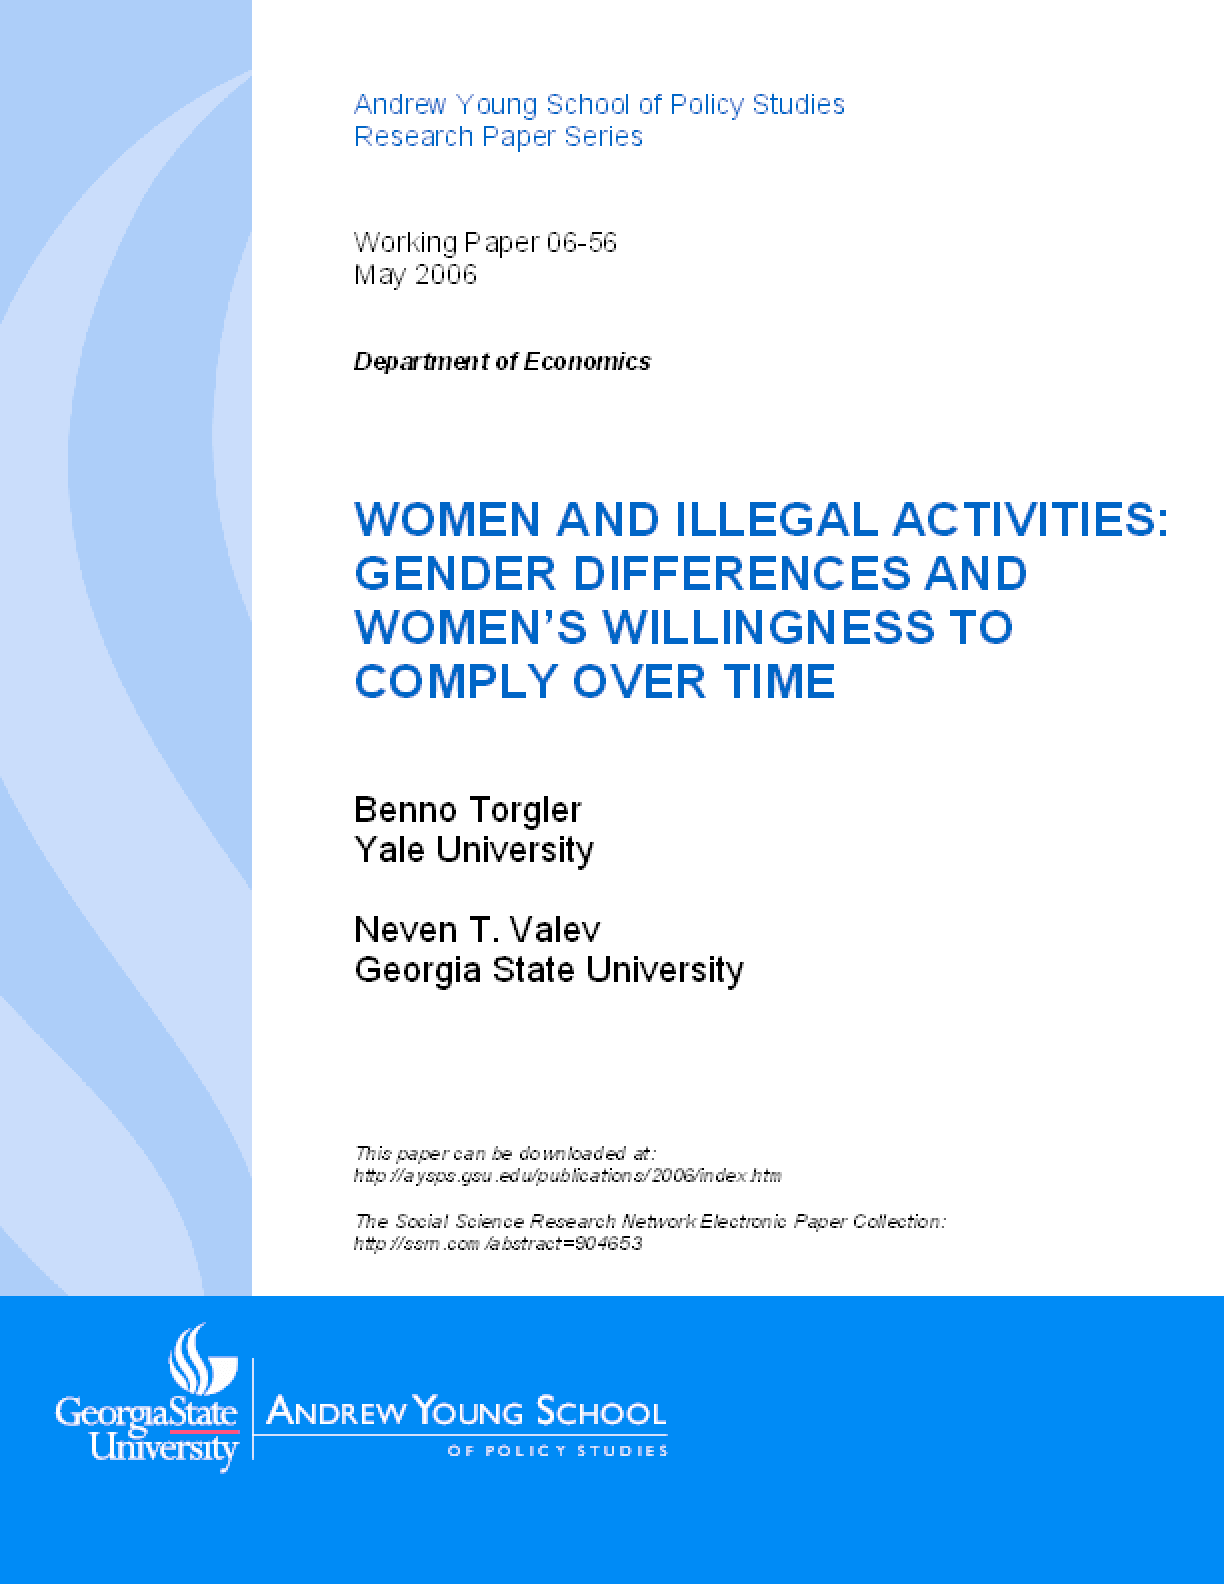 Women and Illegal Activities: Gender Differences and Women's Willingness to Comply Over Time